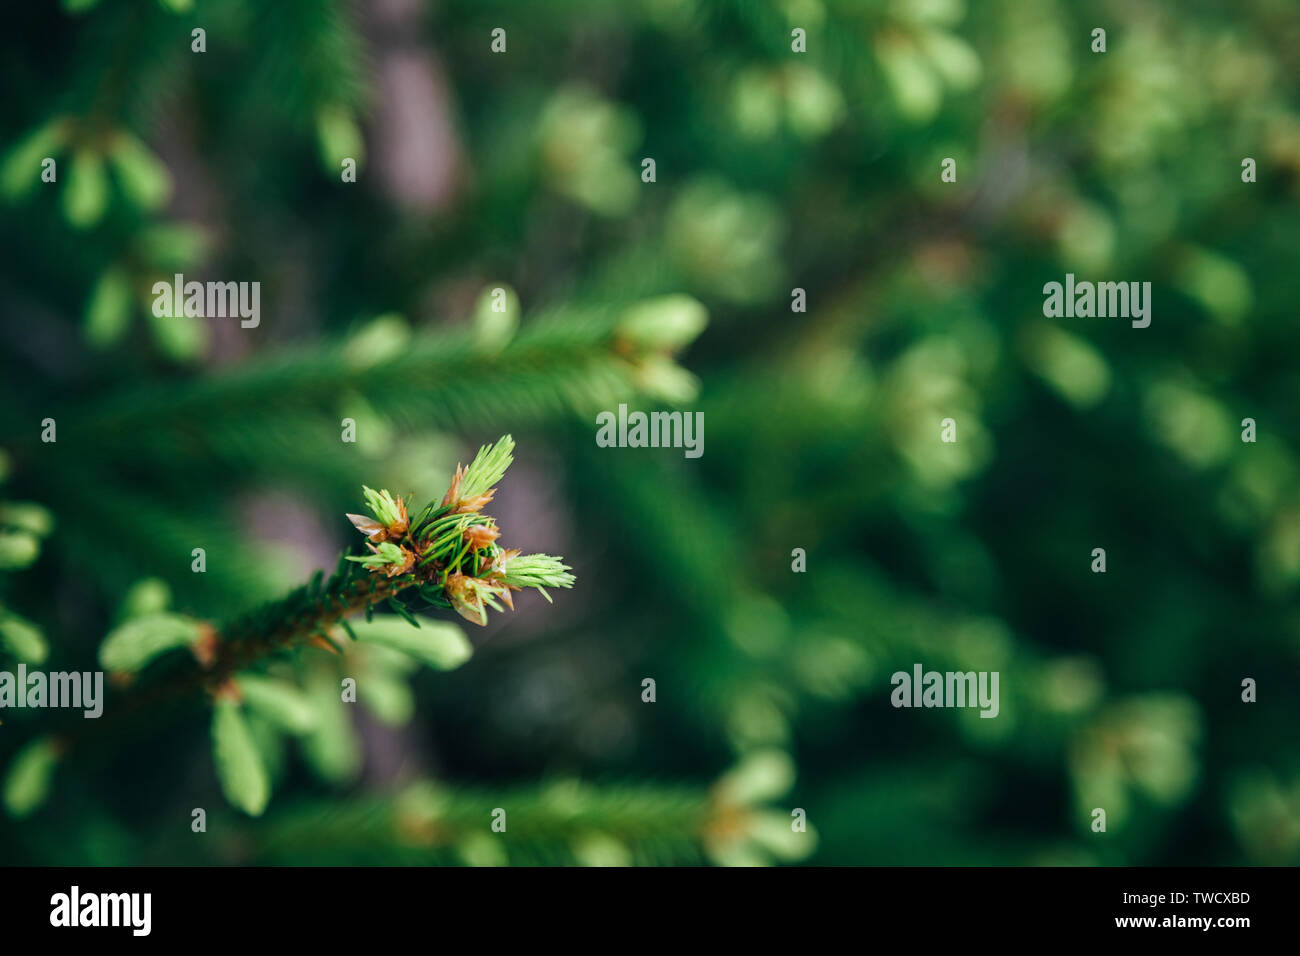 Young fir tree needles, horizontal close up fir tree branches with forest in the background. Copy space. - Stock Image